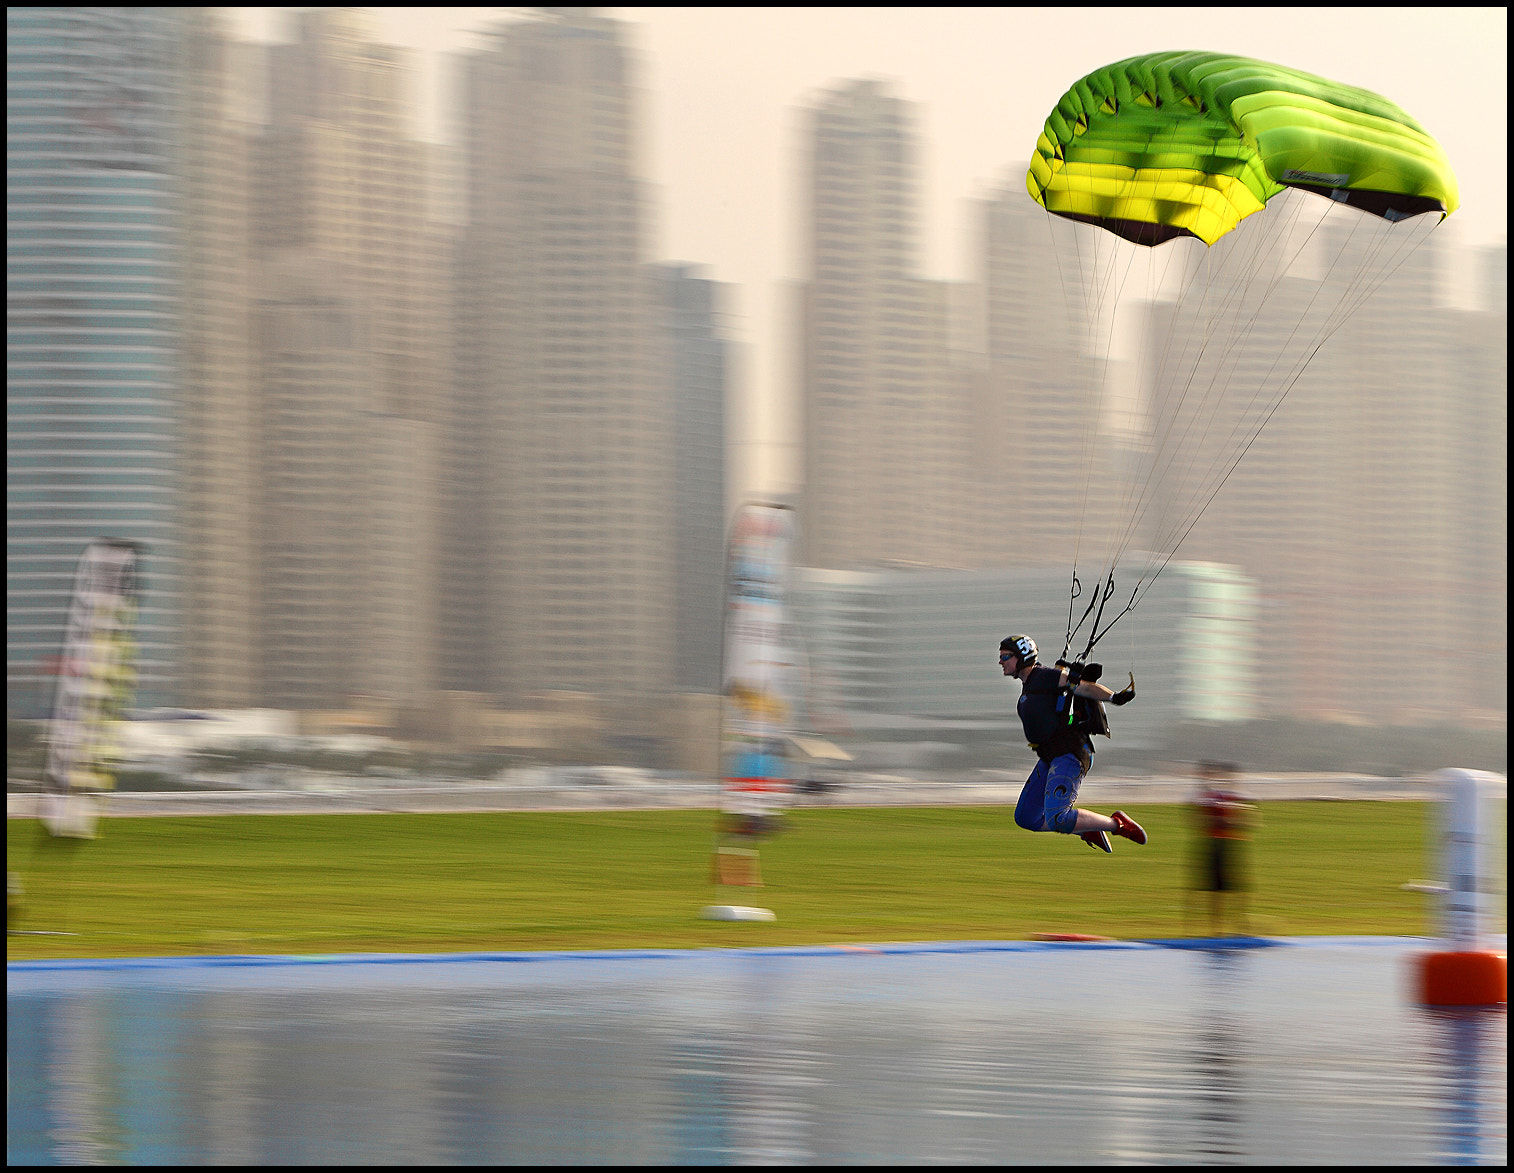 Photograph Skydive Dubai by Shoayb Khattab on 500px